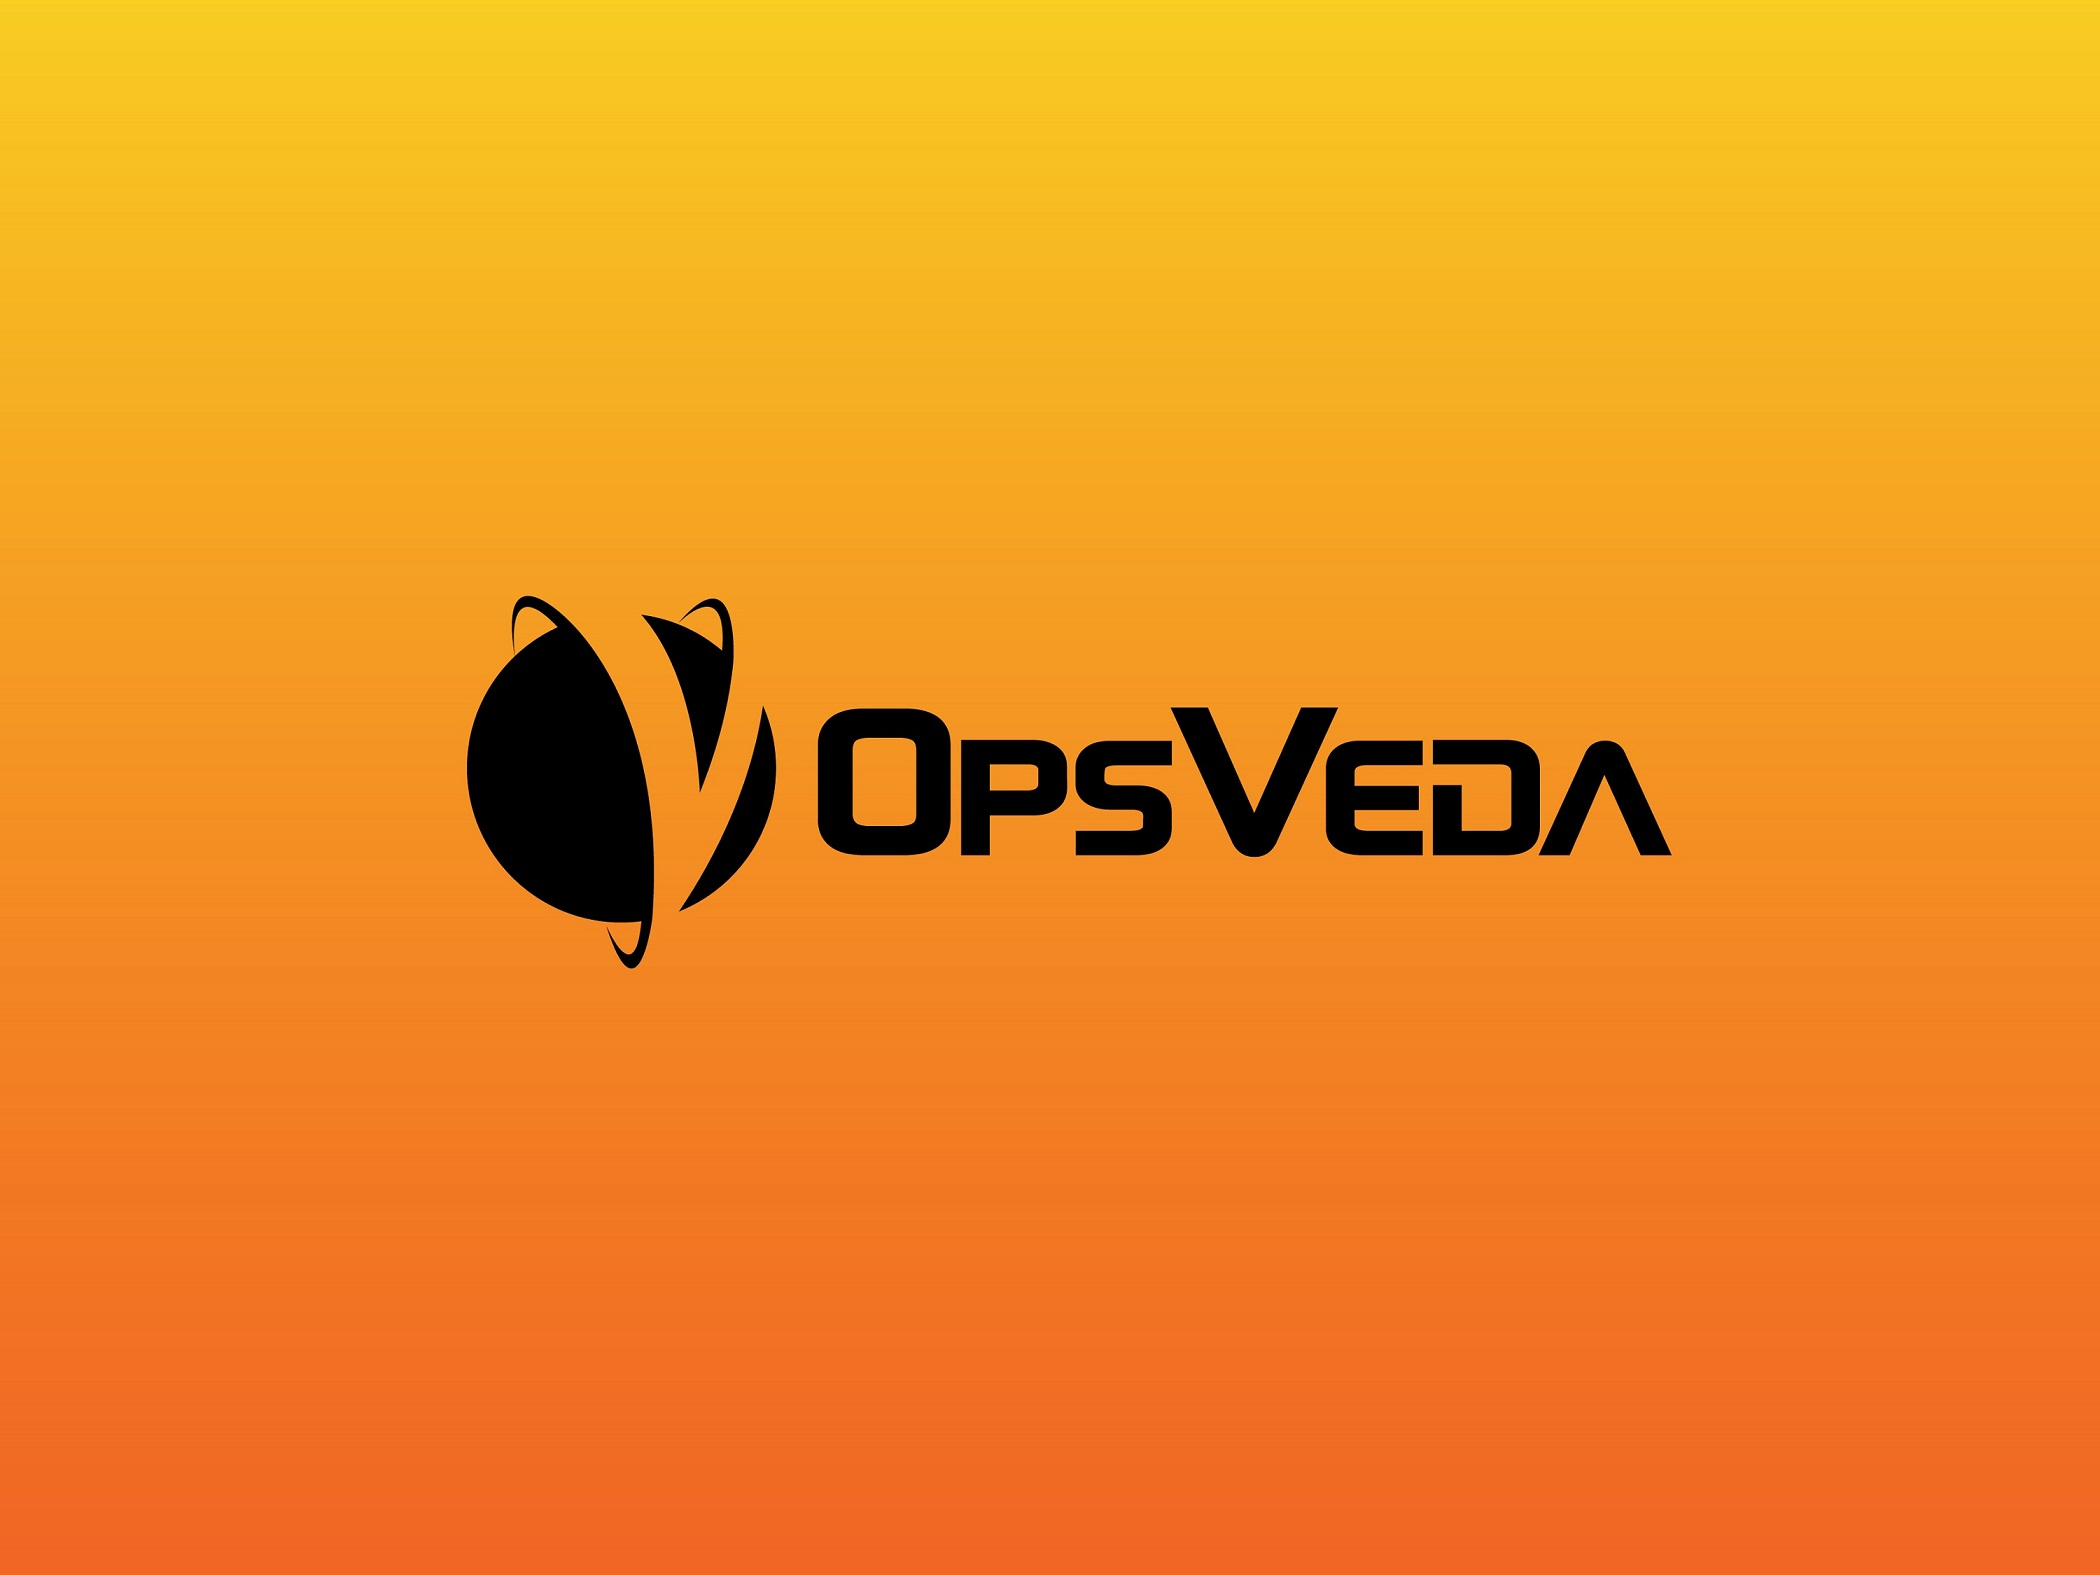 OpsVeda - black on orange